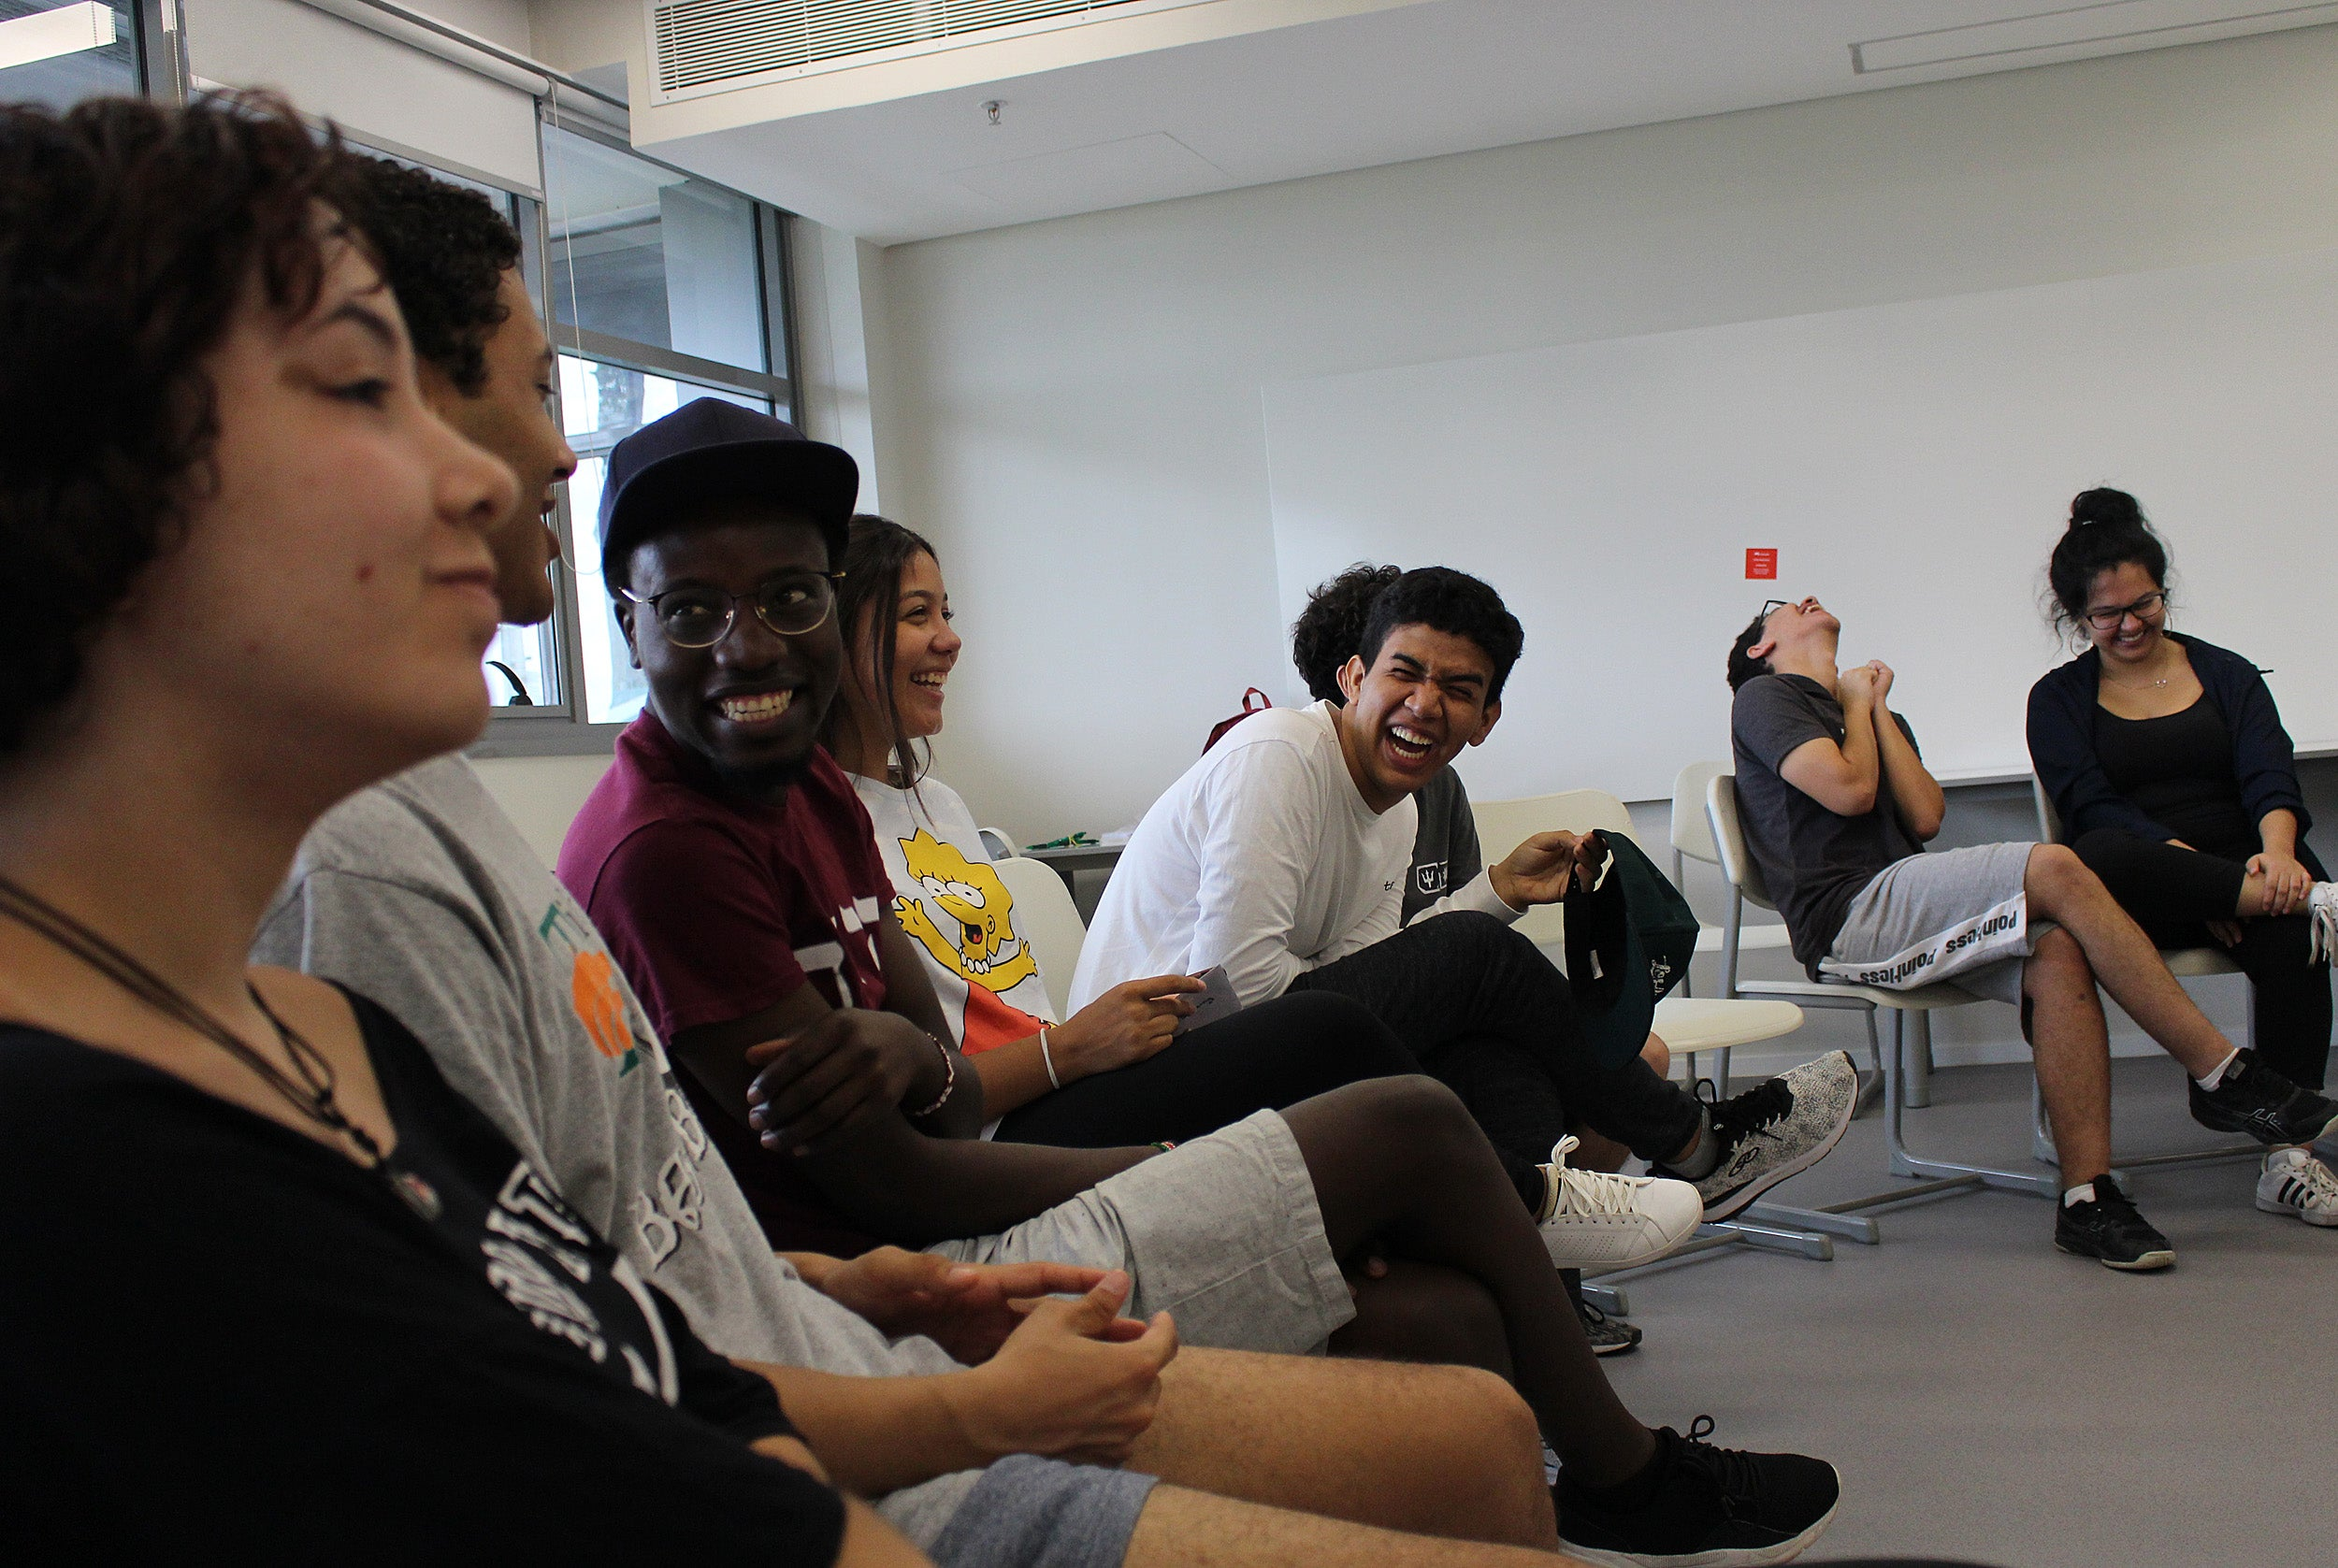 Students laughing.